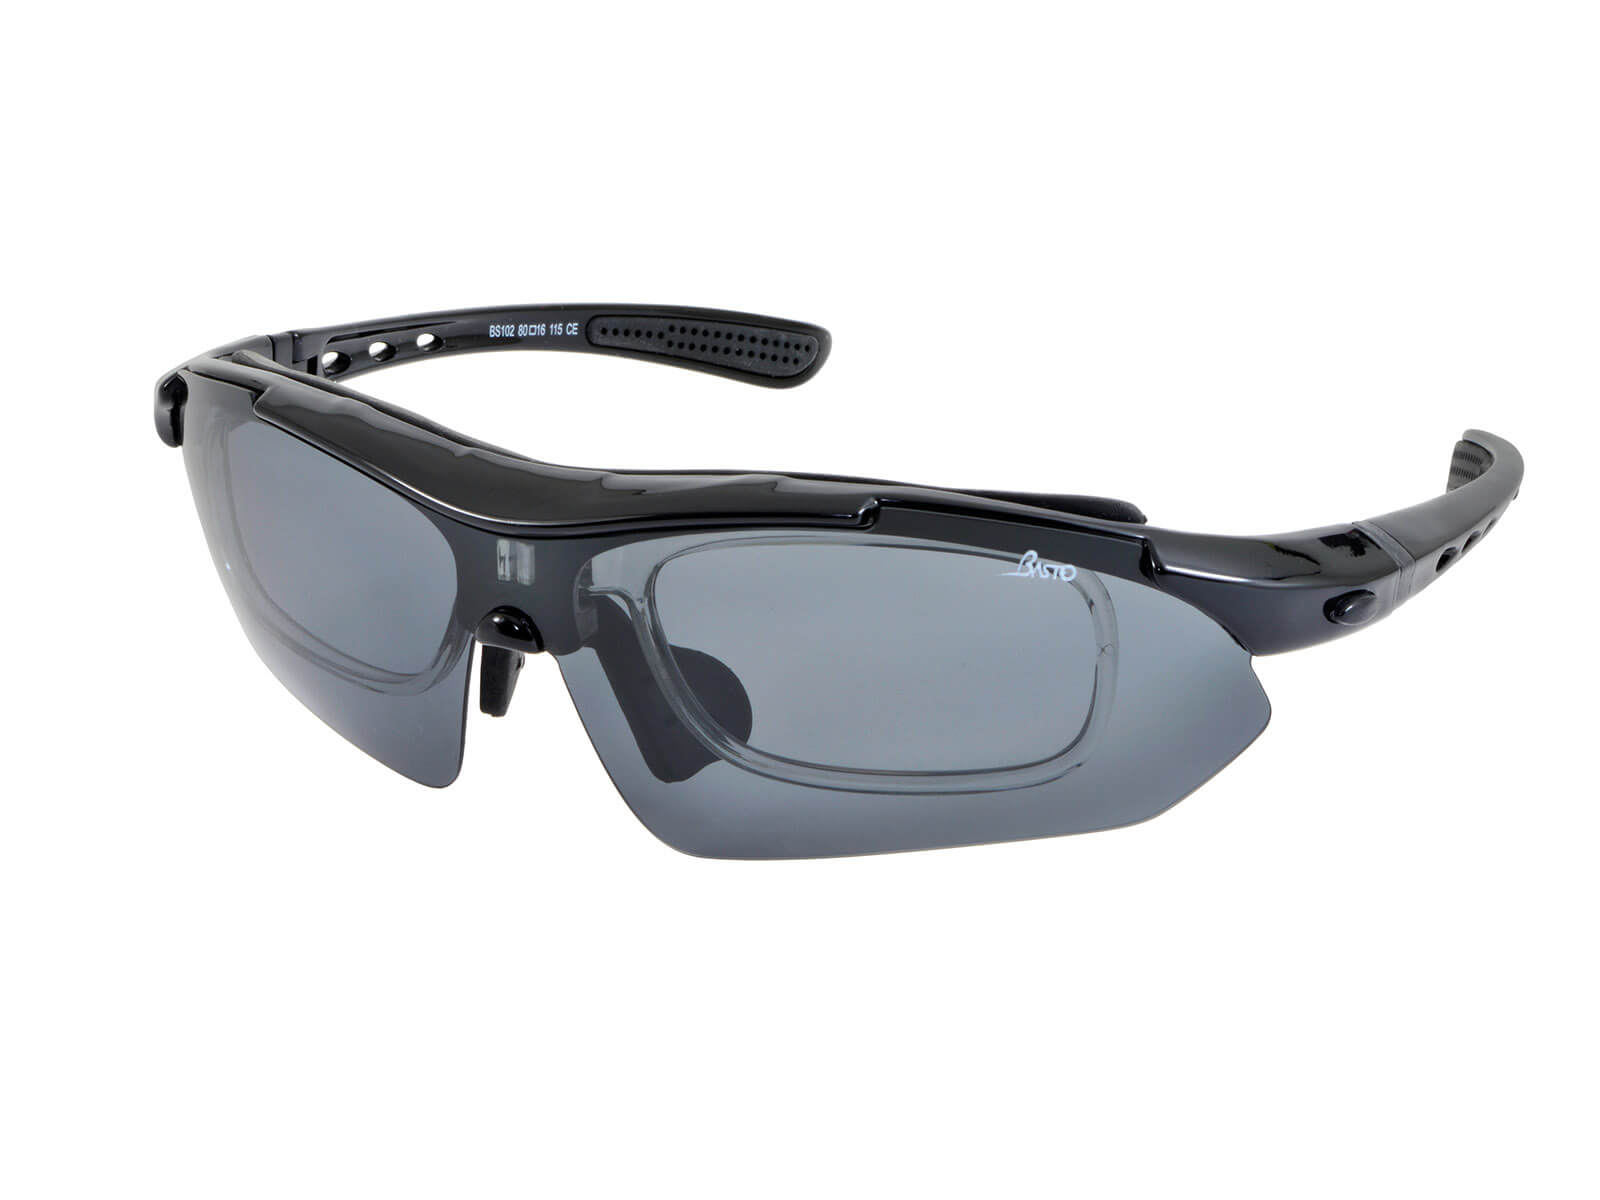 3406fcb46a78 Sports eyewear from Pybus Opticians in Canterbury - Pybus Opticians